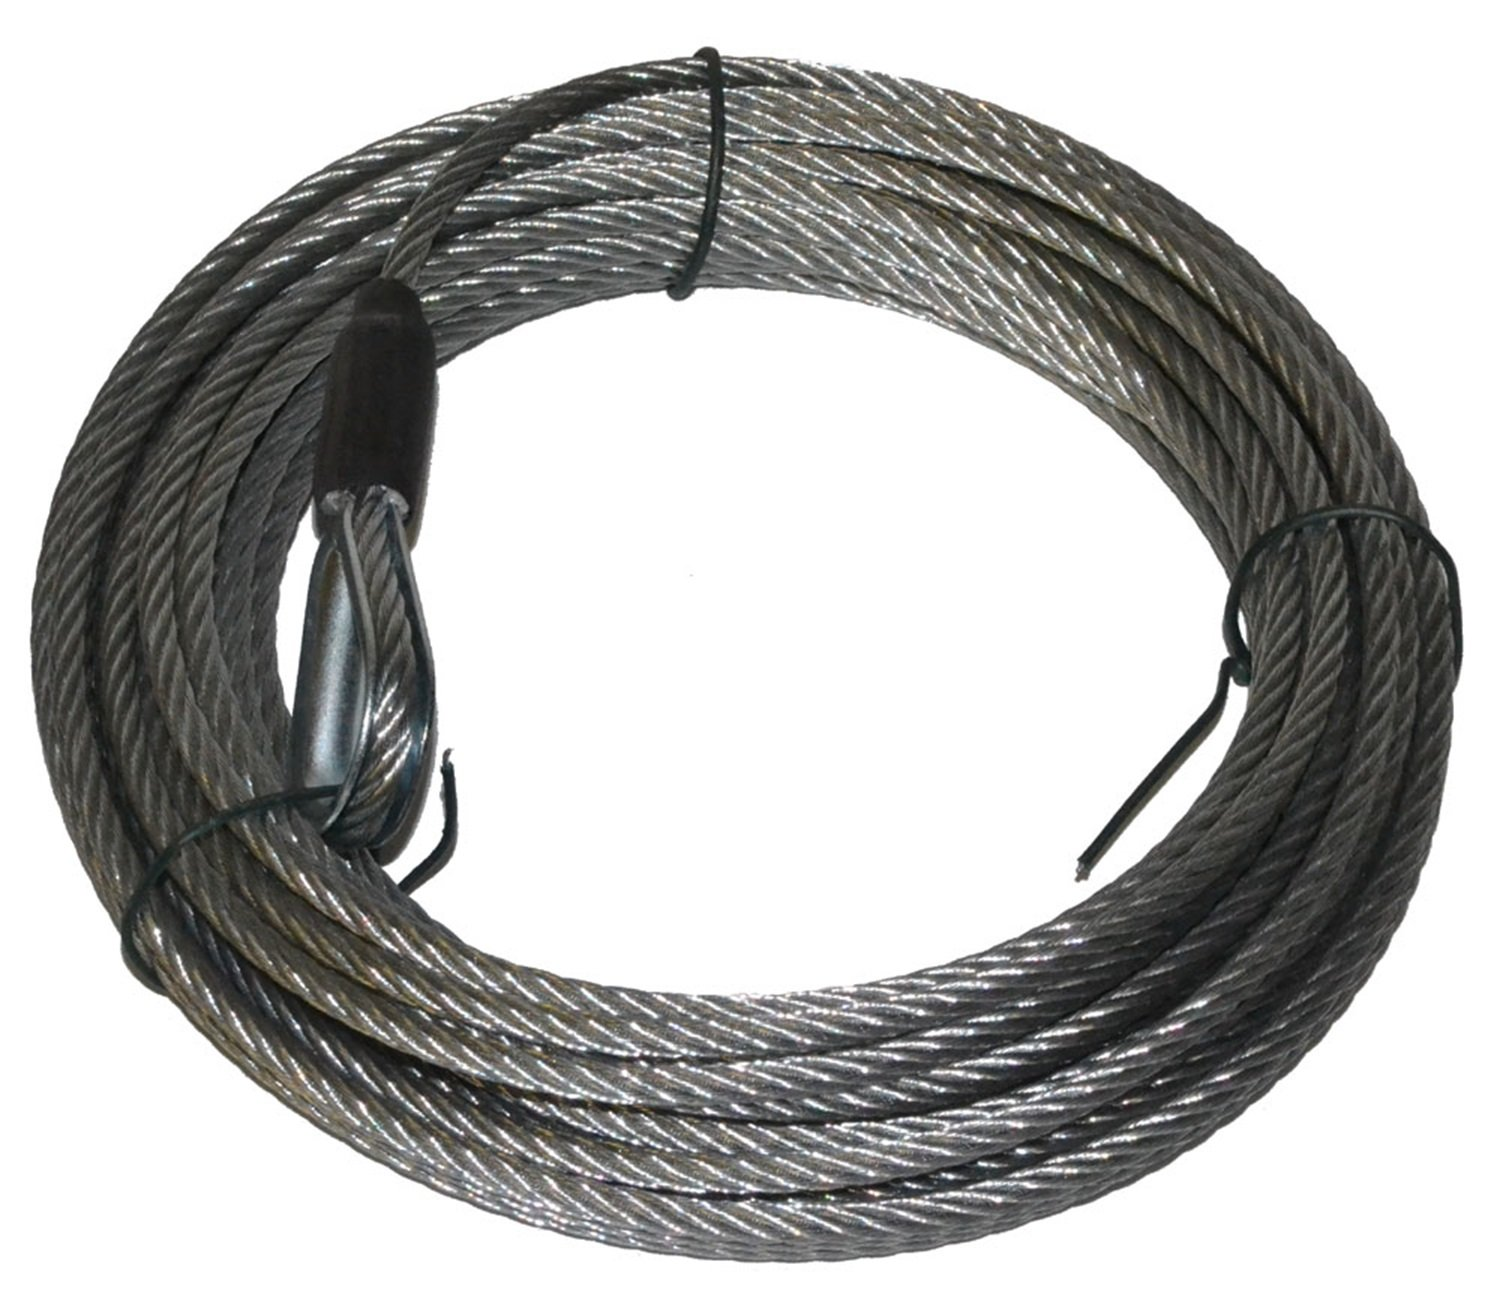 WARN 79835 3//16 x 35 Wire Rope